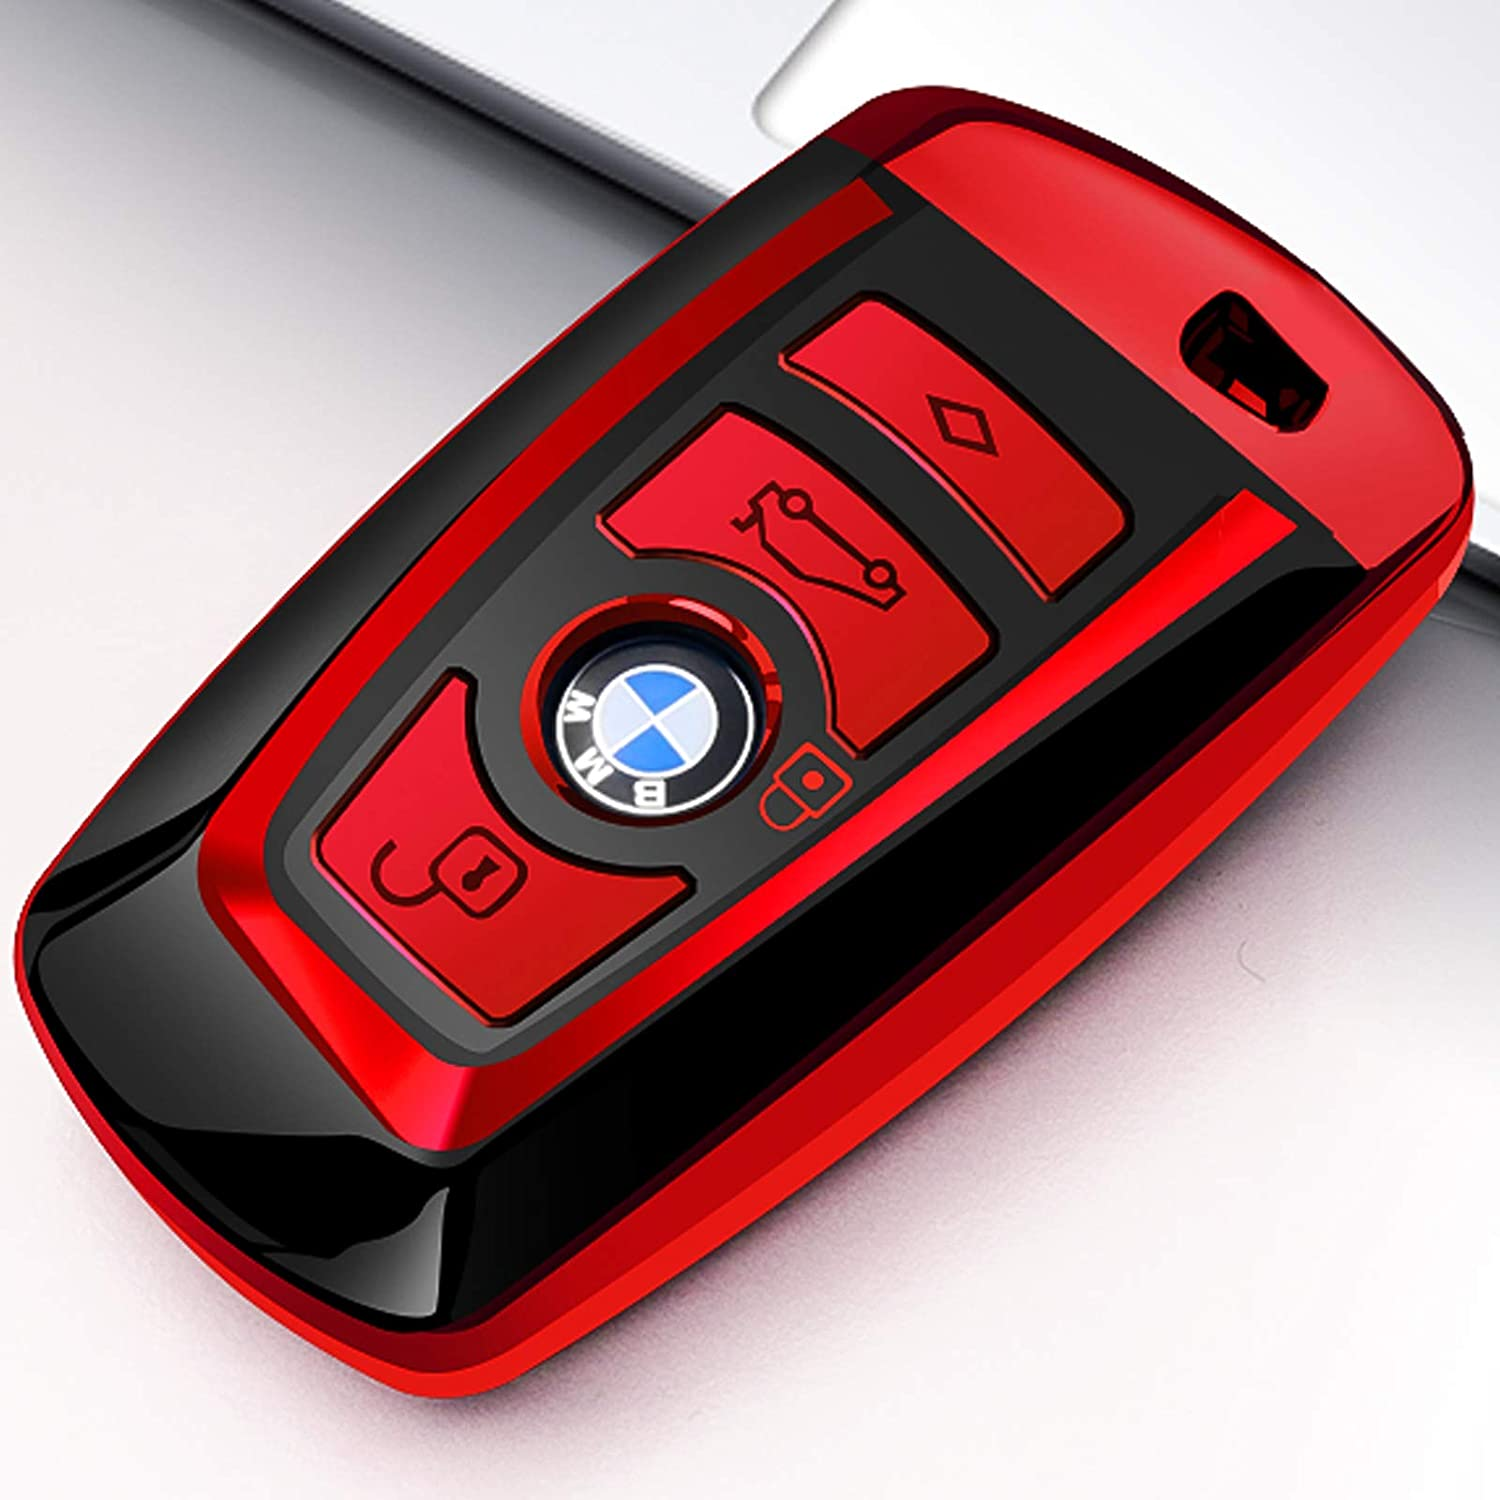 Uxinuo BMW Key Fob Cover, Key Fob Case for BMW 1 3 4 5 6 7 Series X3 X4 M5 M6 GT3 GT5 Remote Control Key Premium Soft TPU Anti-dust Full Protection, Red